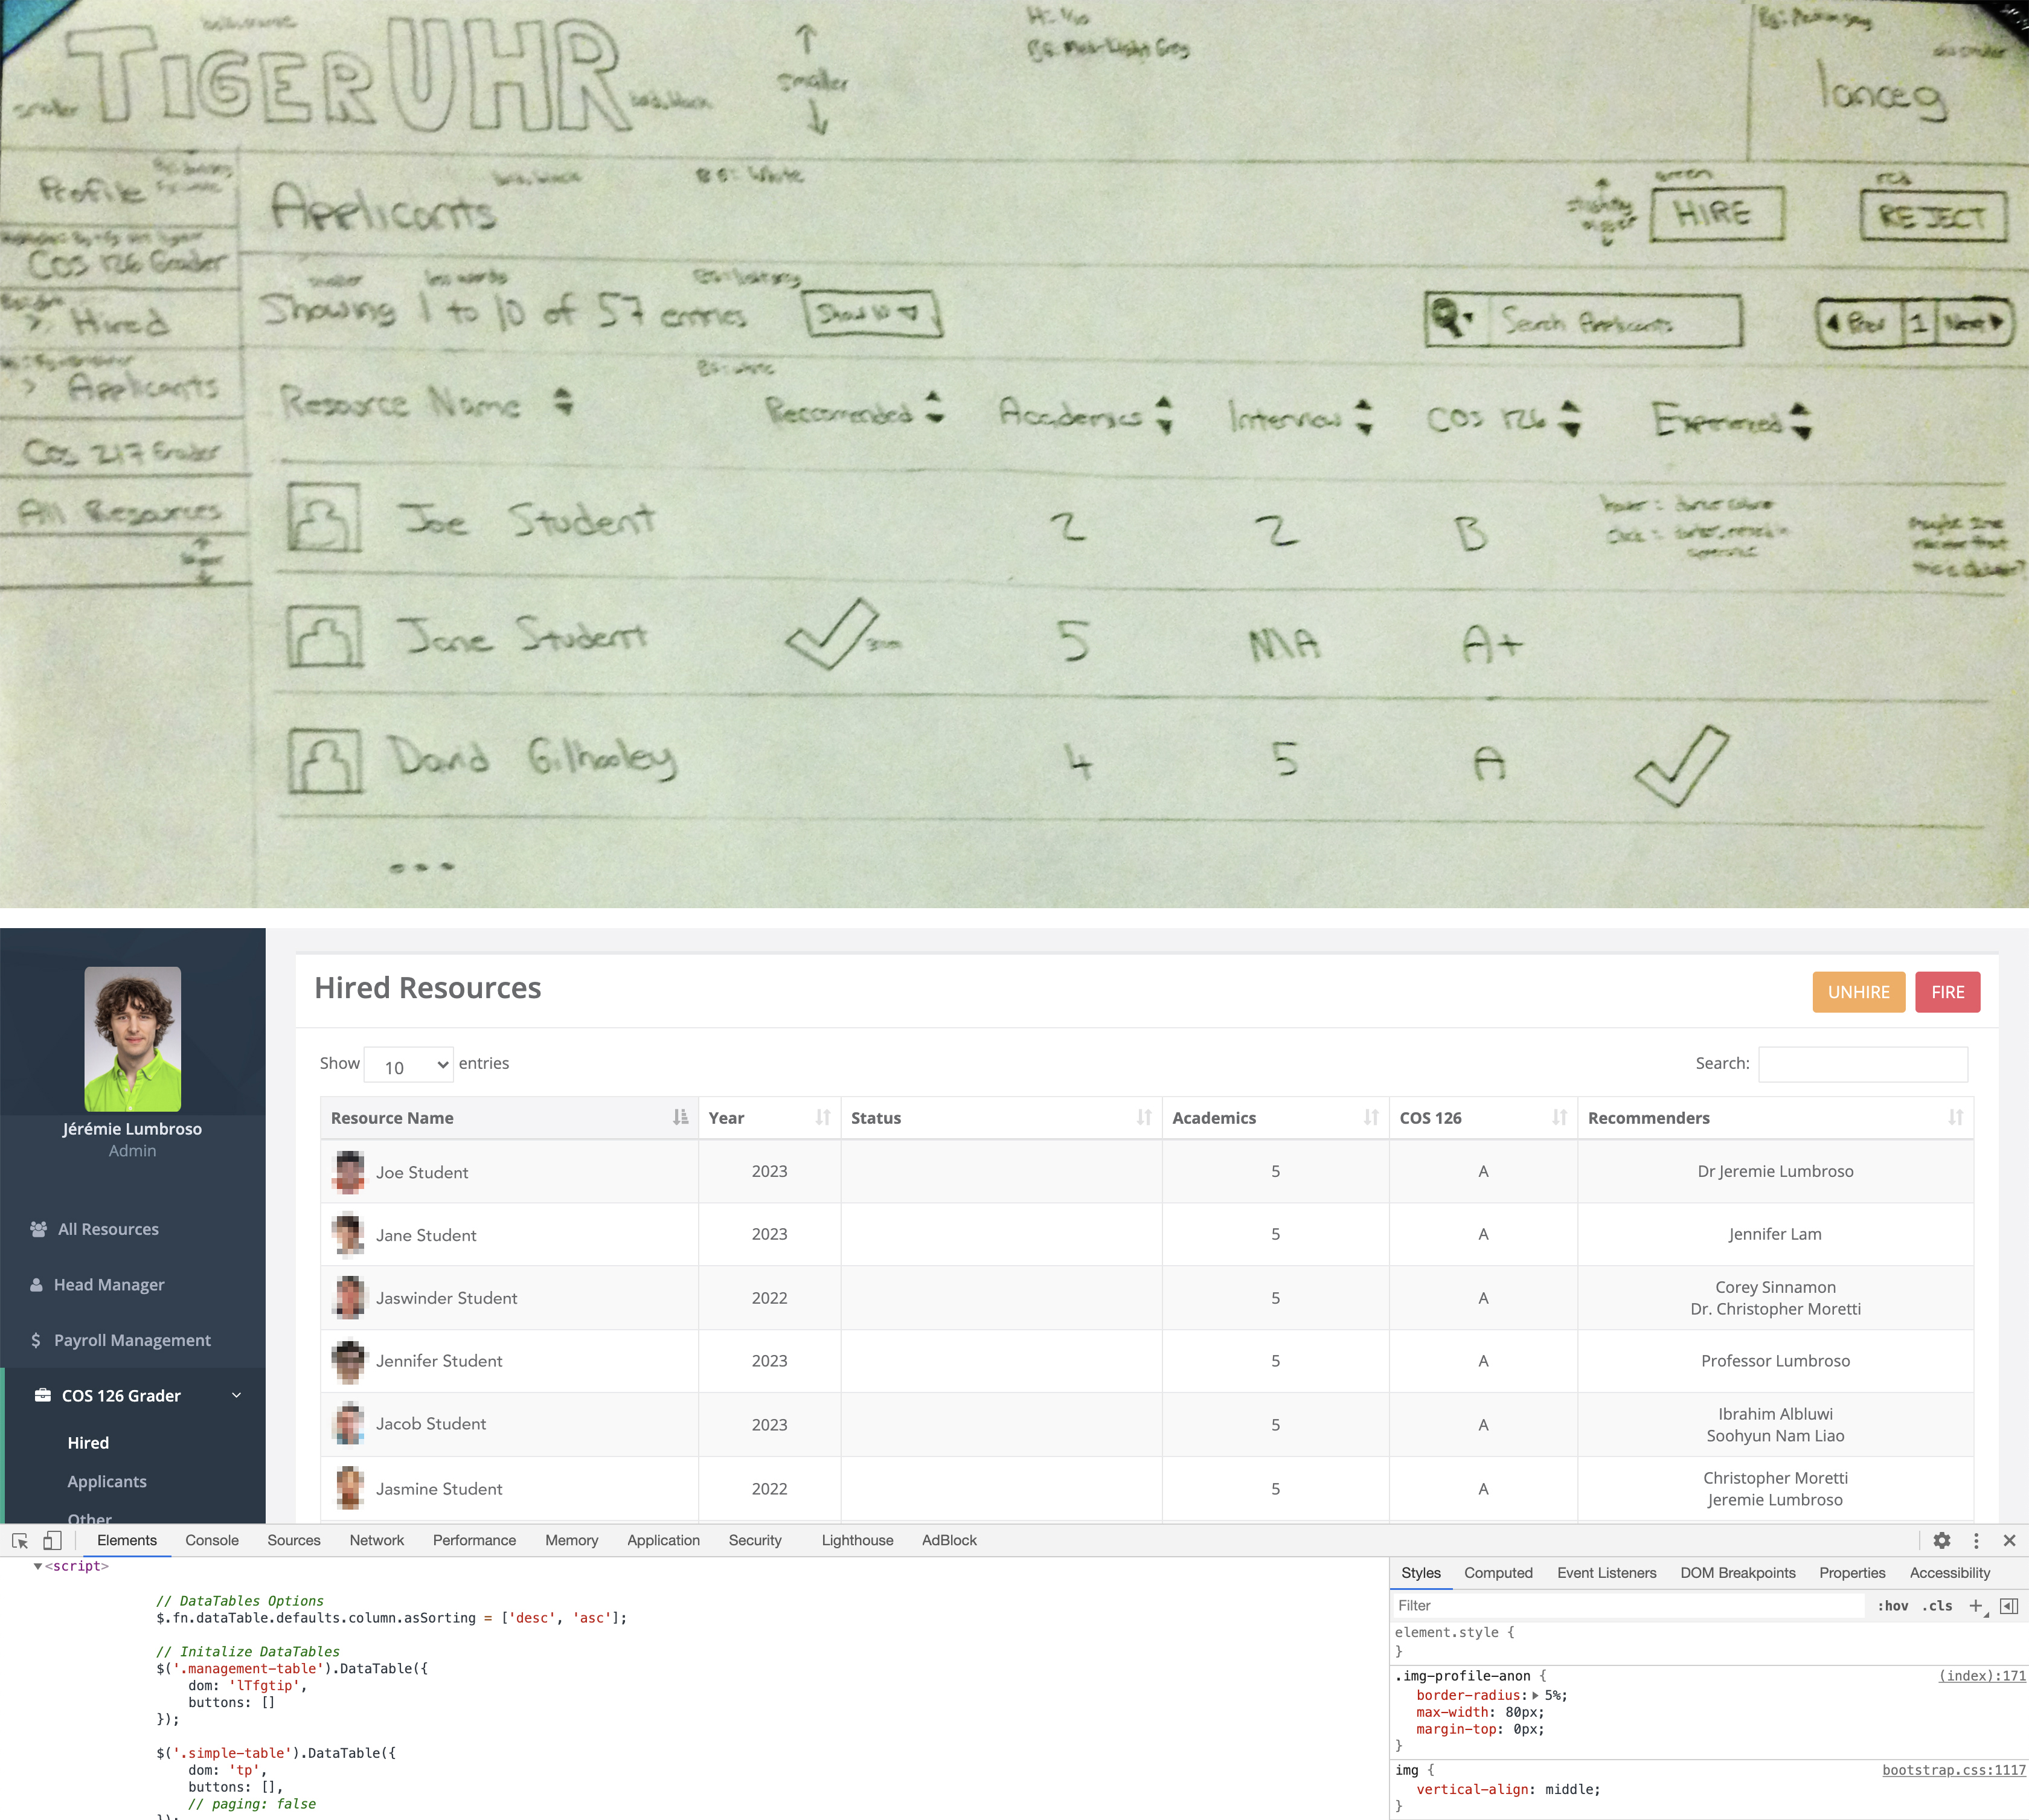 Two images stacked on top of each other.  Top image is a photo of a hand drawn draft by Lance Goodridge of the TigerUHR site layout.  Bottom image is a screen shot of the actual TigerUHR website from the view of an admin.